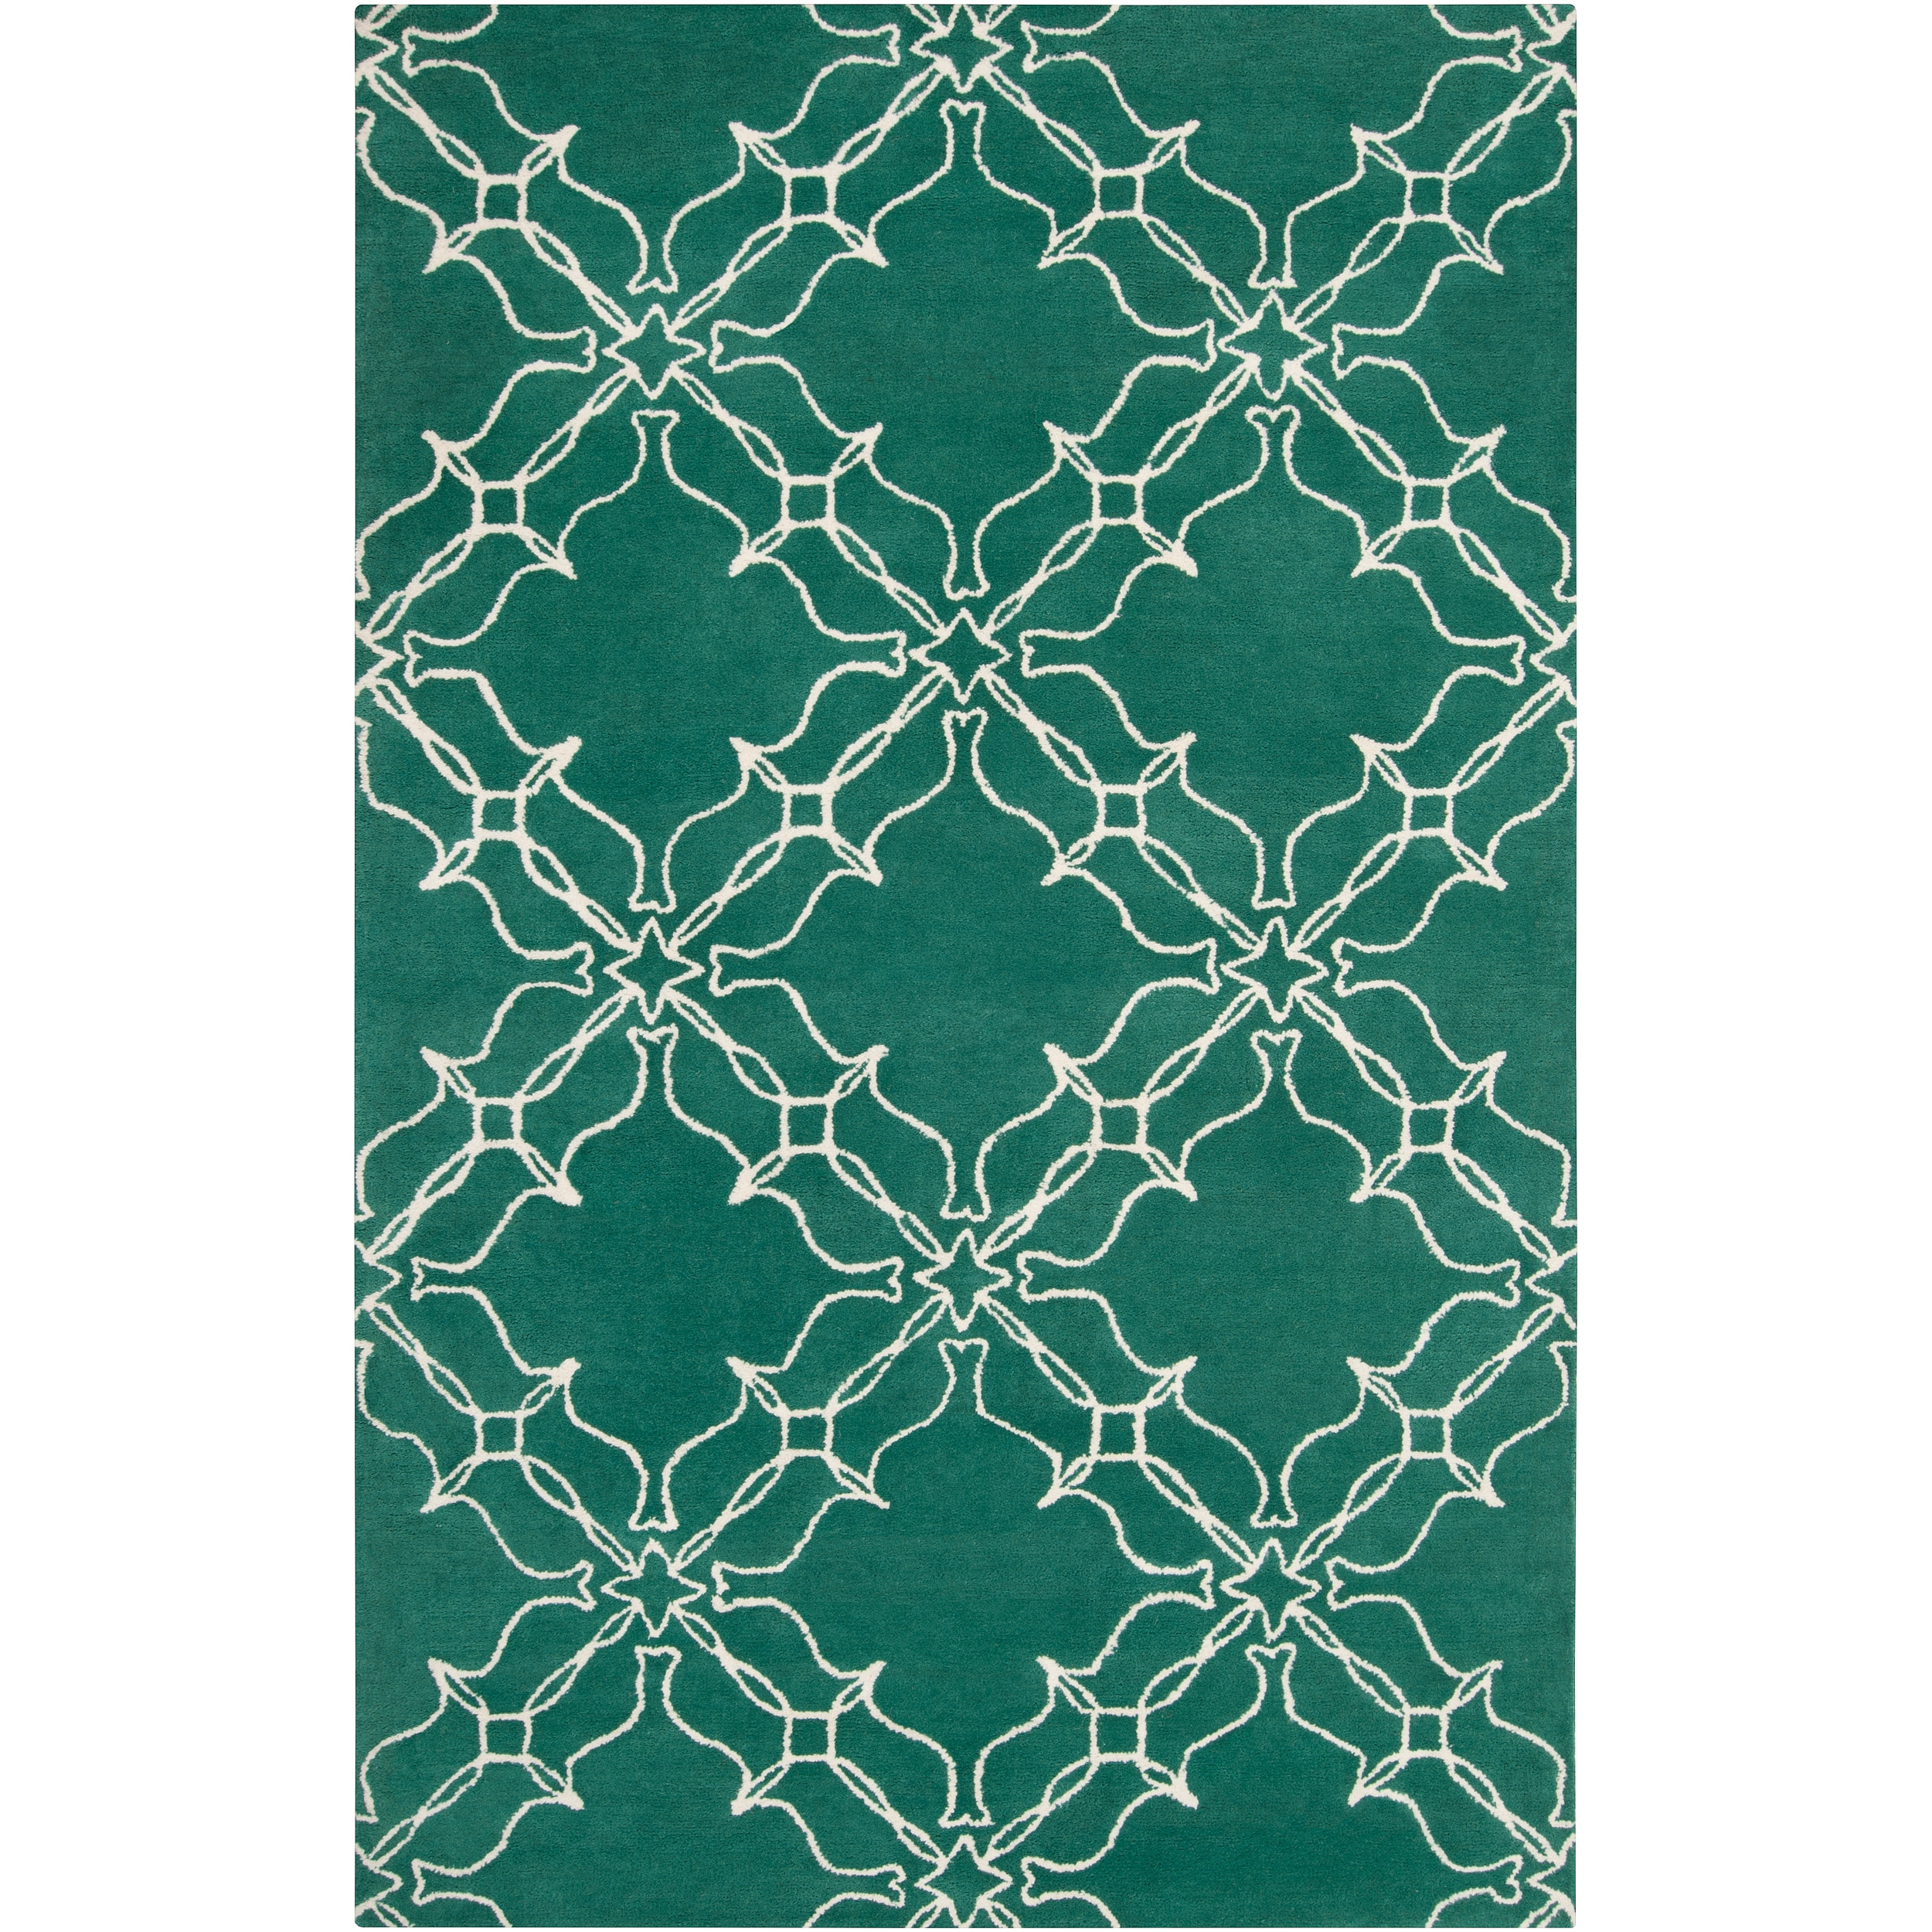 Aimee Wilder Hand-Tufted Green Courland Transitional Geometric Trellis Wool Rug (8' x 11')